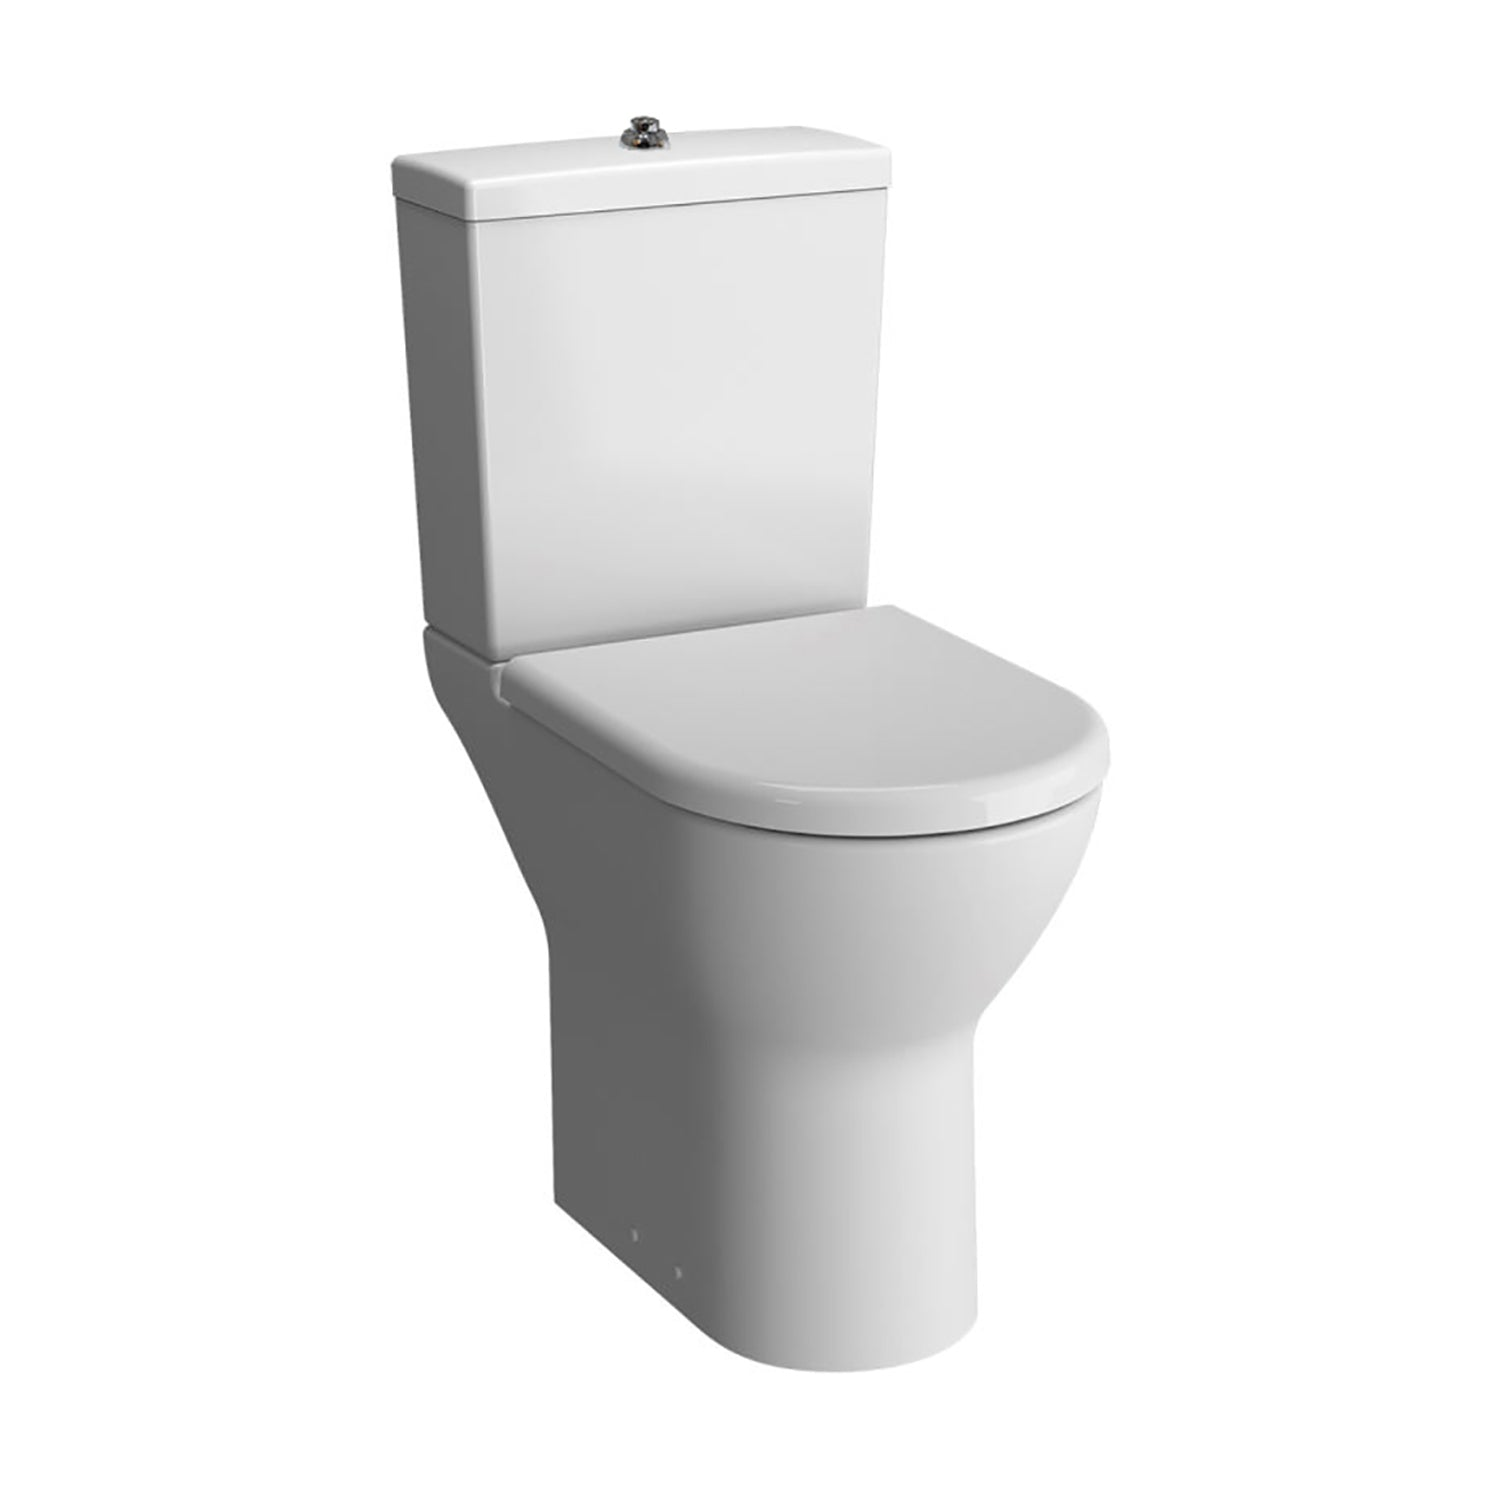 Vesta Comfort Height Close Coupled Toilet on a white background